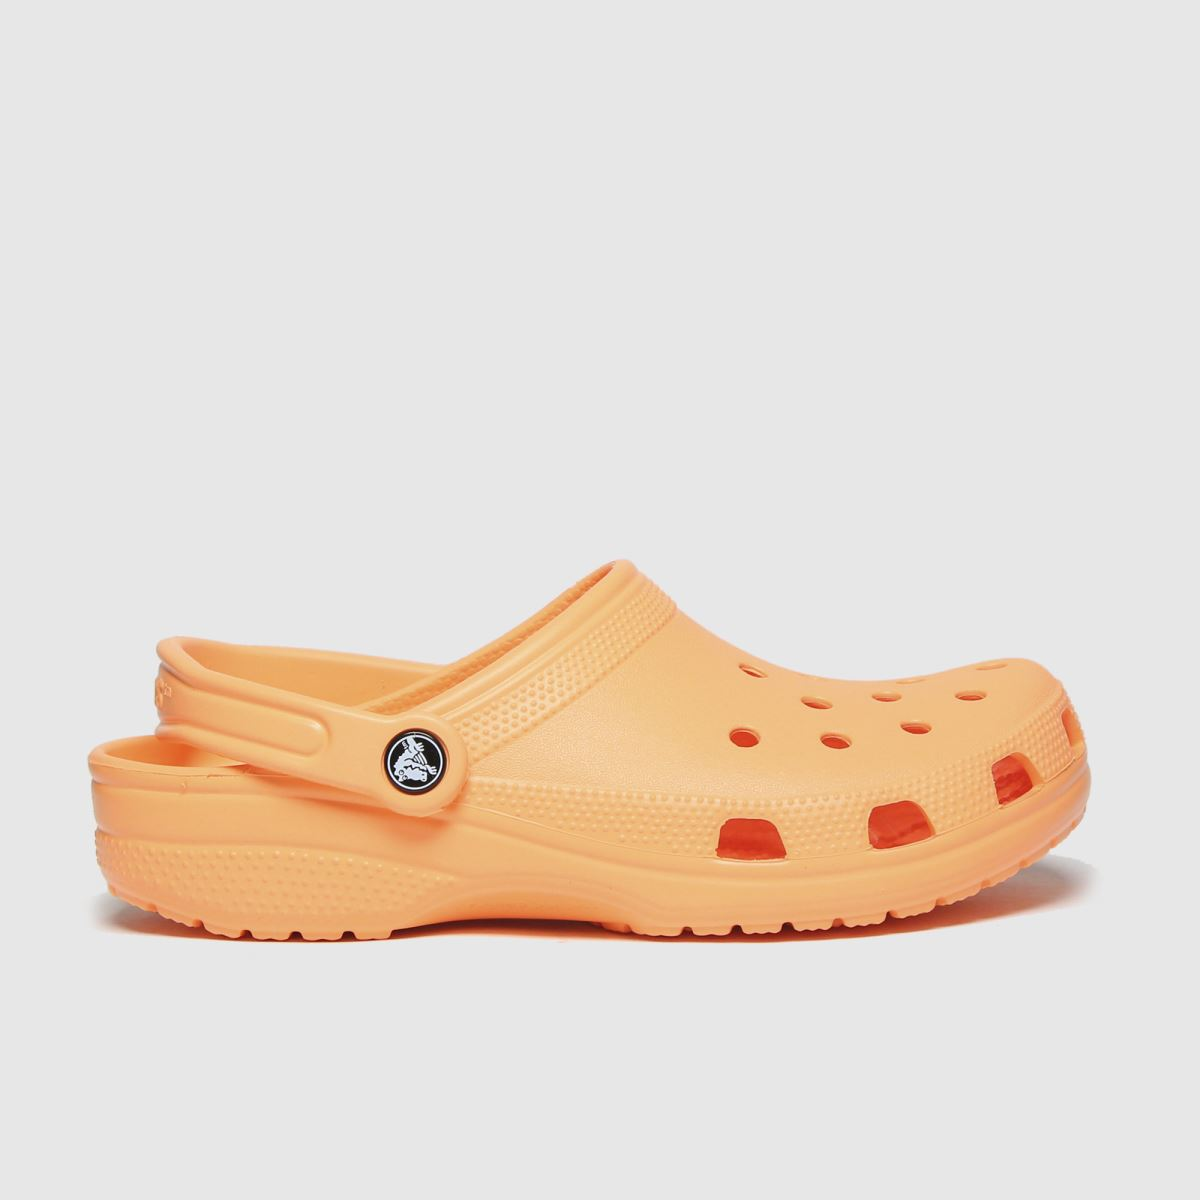 Crocs Orange Classic Clog Sandals